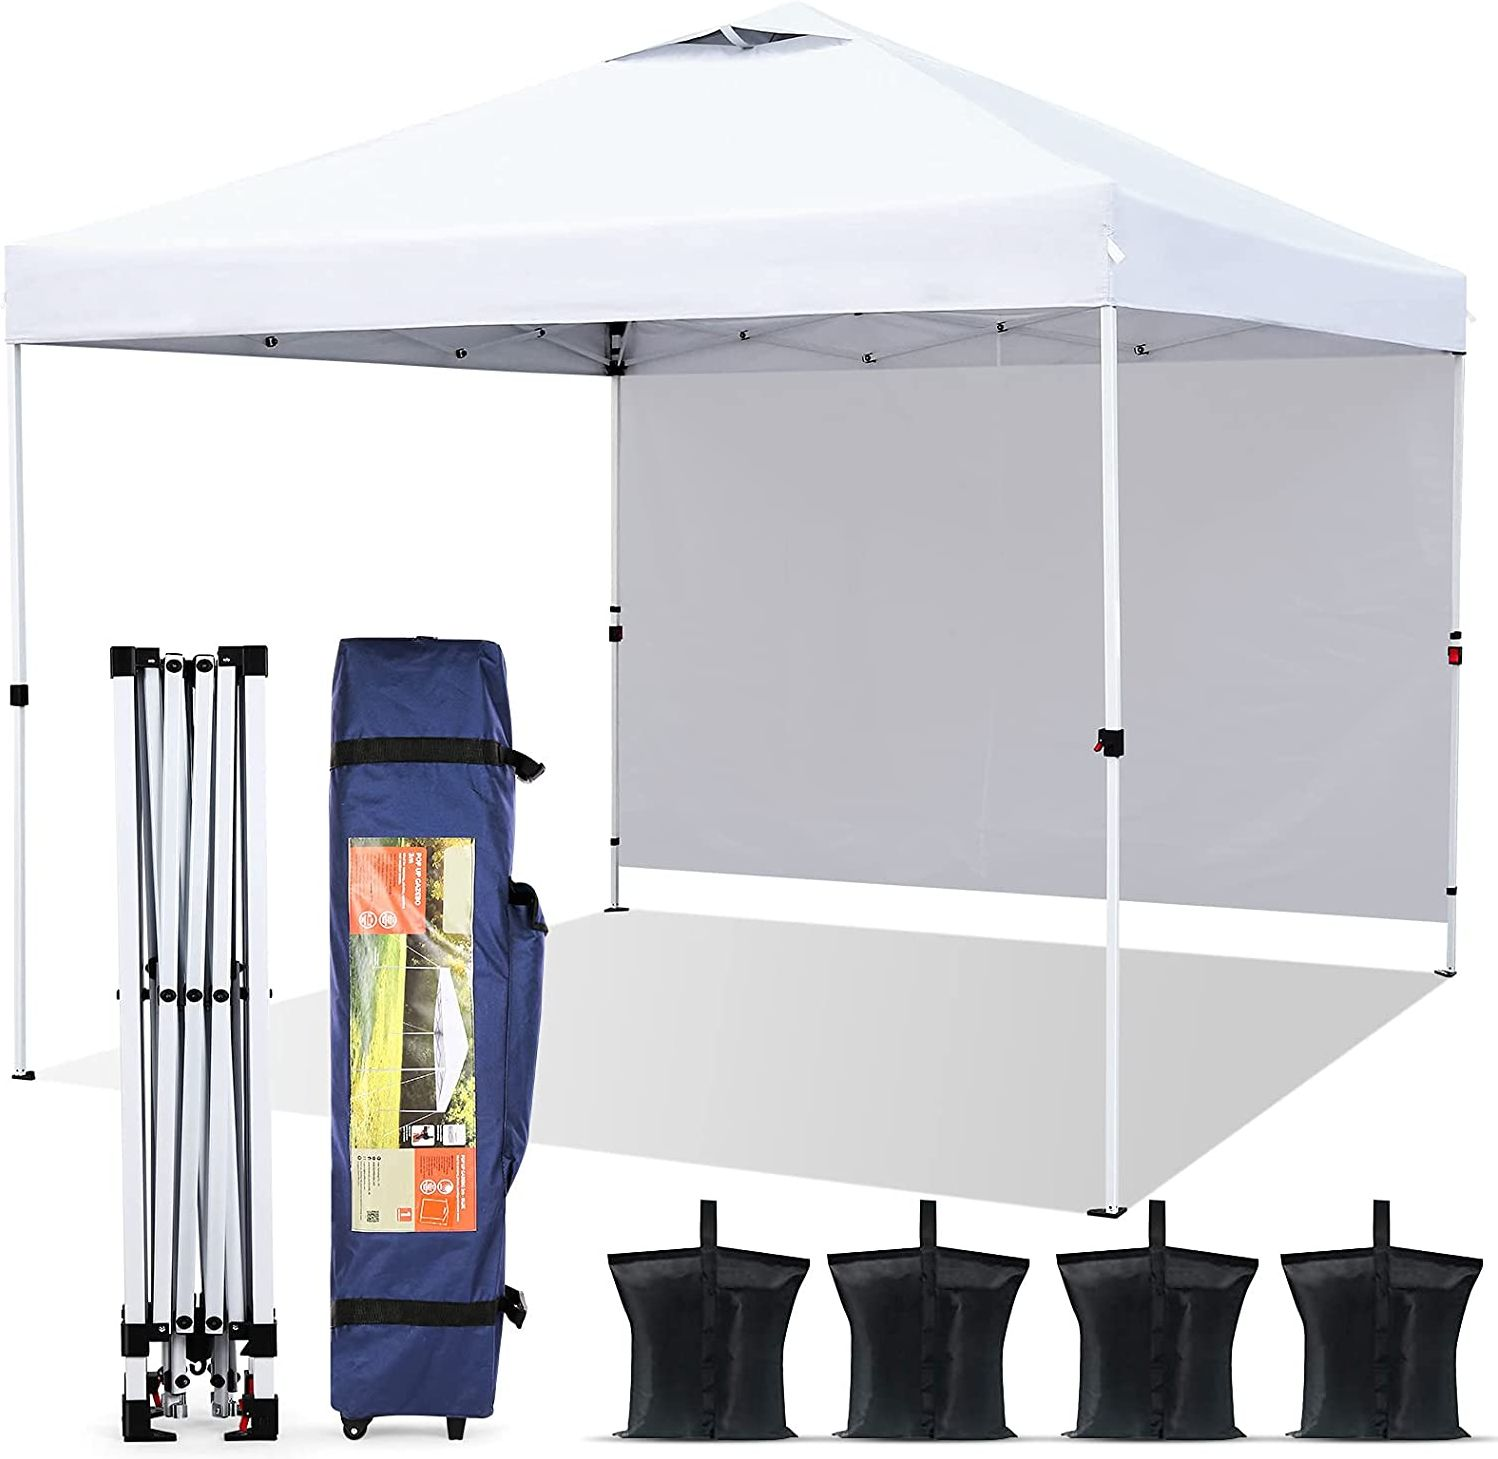 10-Foot Pop-Up Canopy $99 at Amazon